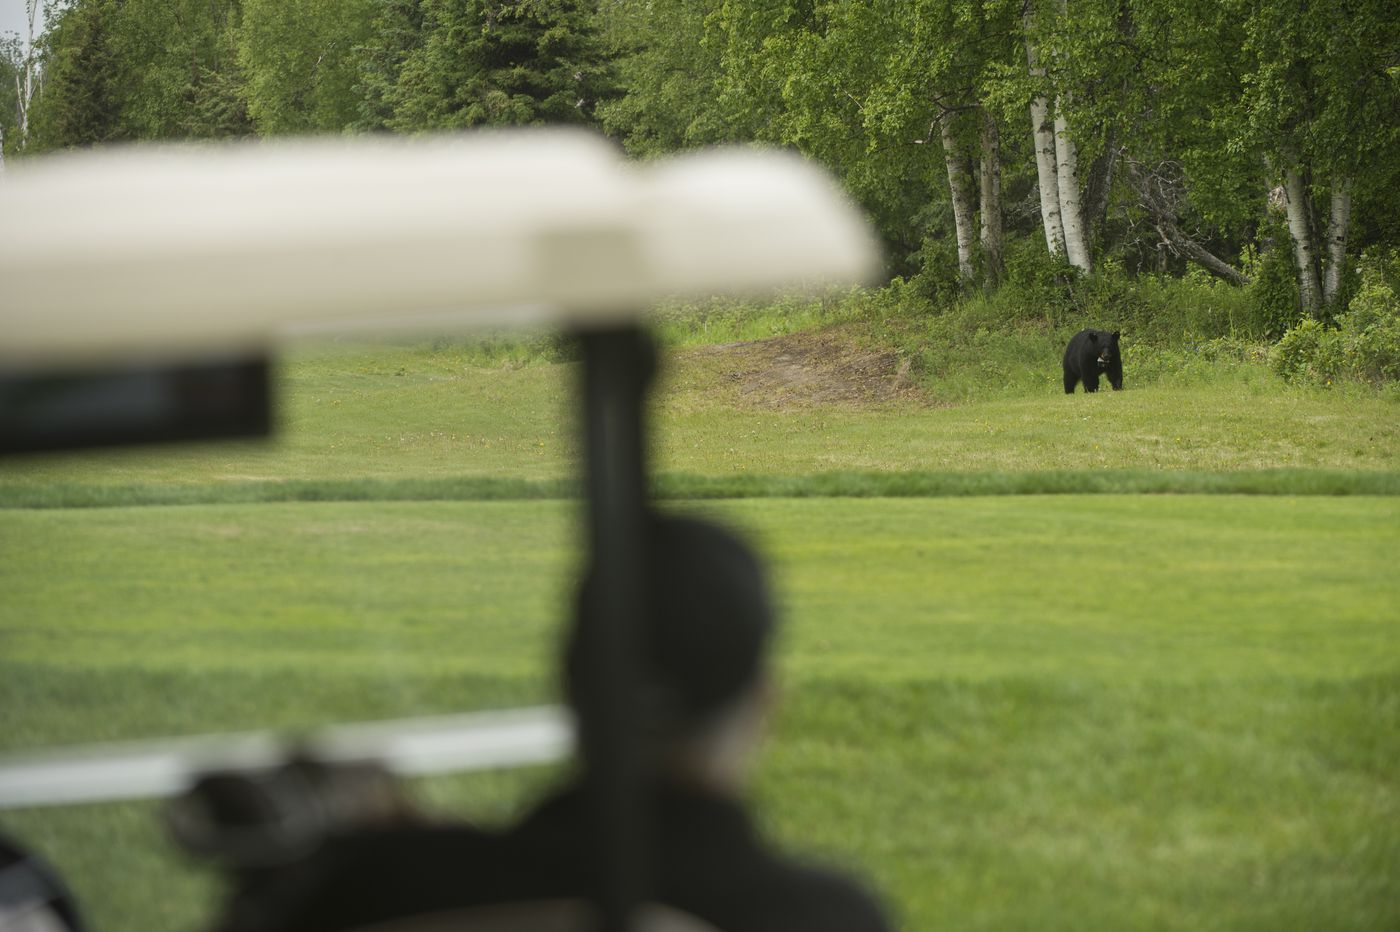 A black bear passes through the Creek Course at Moose Run Golf Course. (Marc Lester / Alaska Dispatch News)